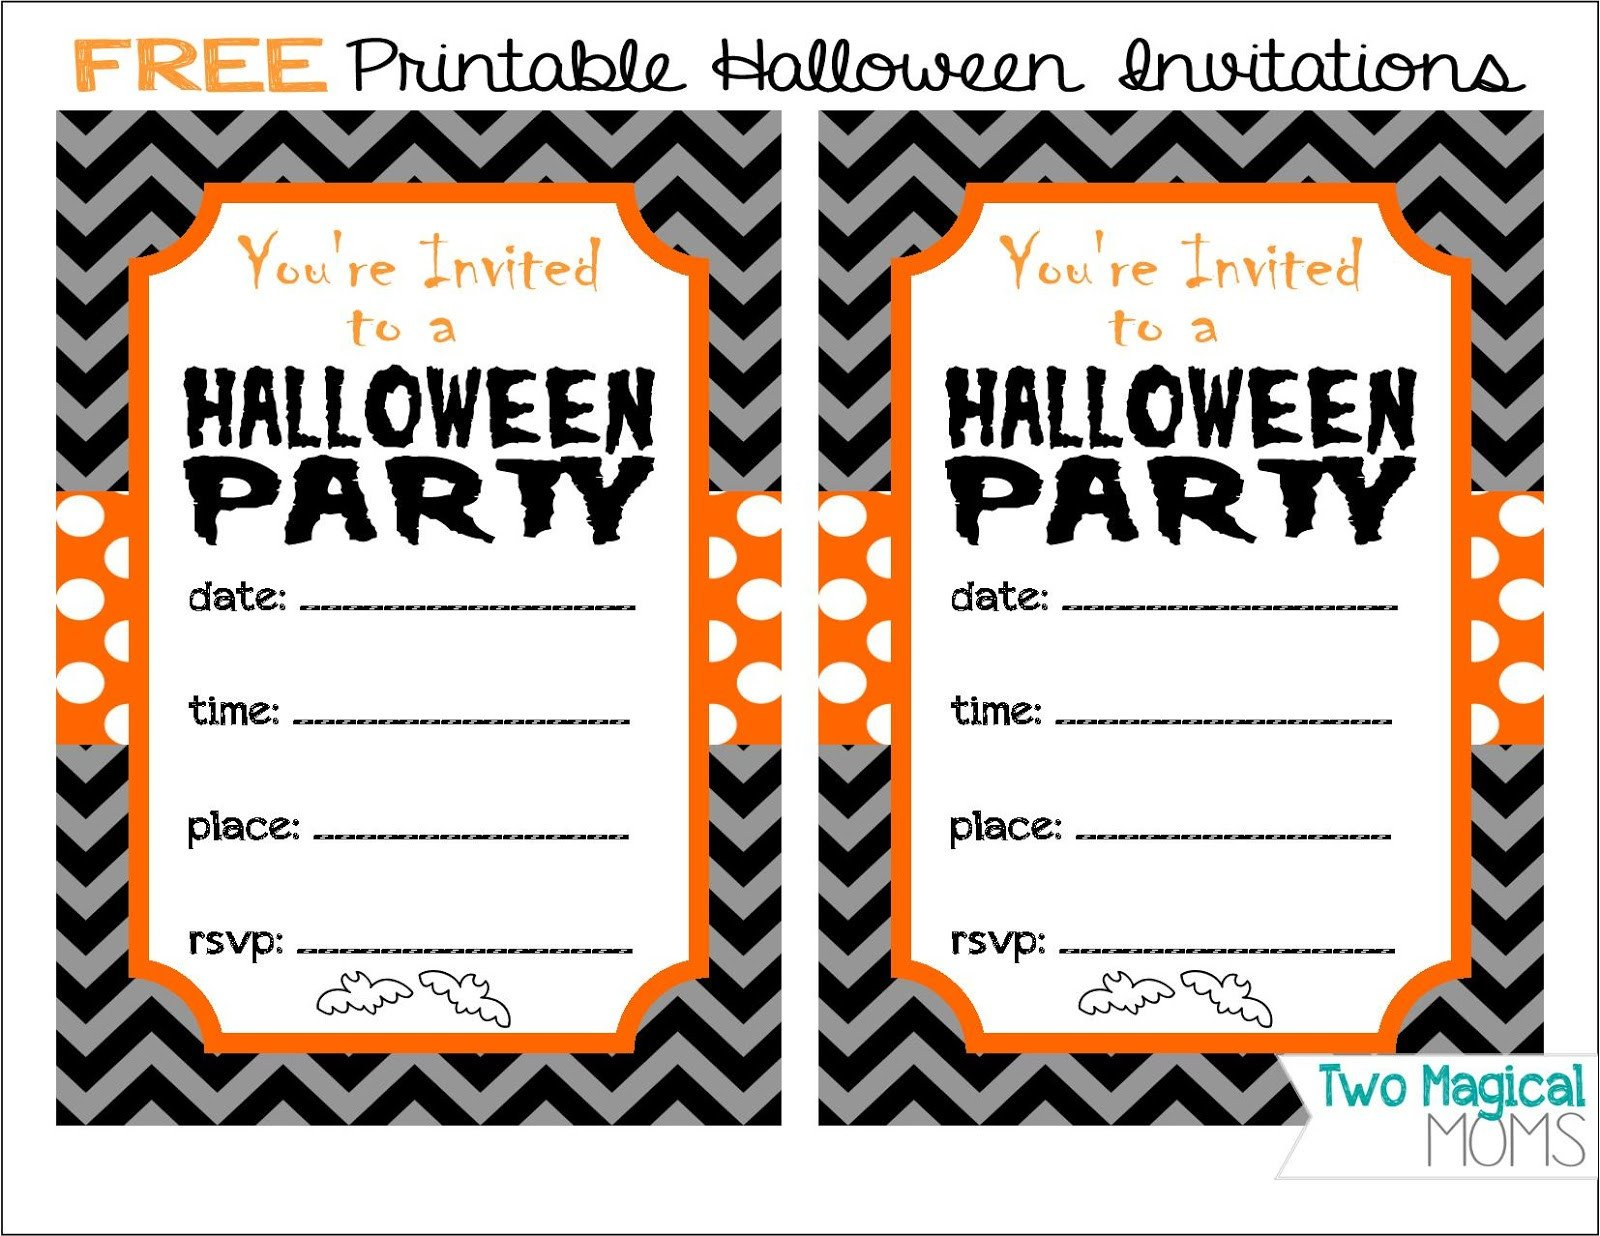 Free Halloween Invitations Templates Printable Two Magical Moms Free Printable Halloween Invitations